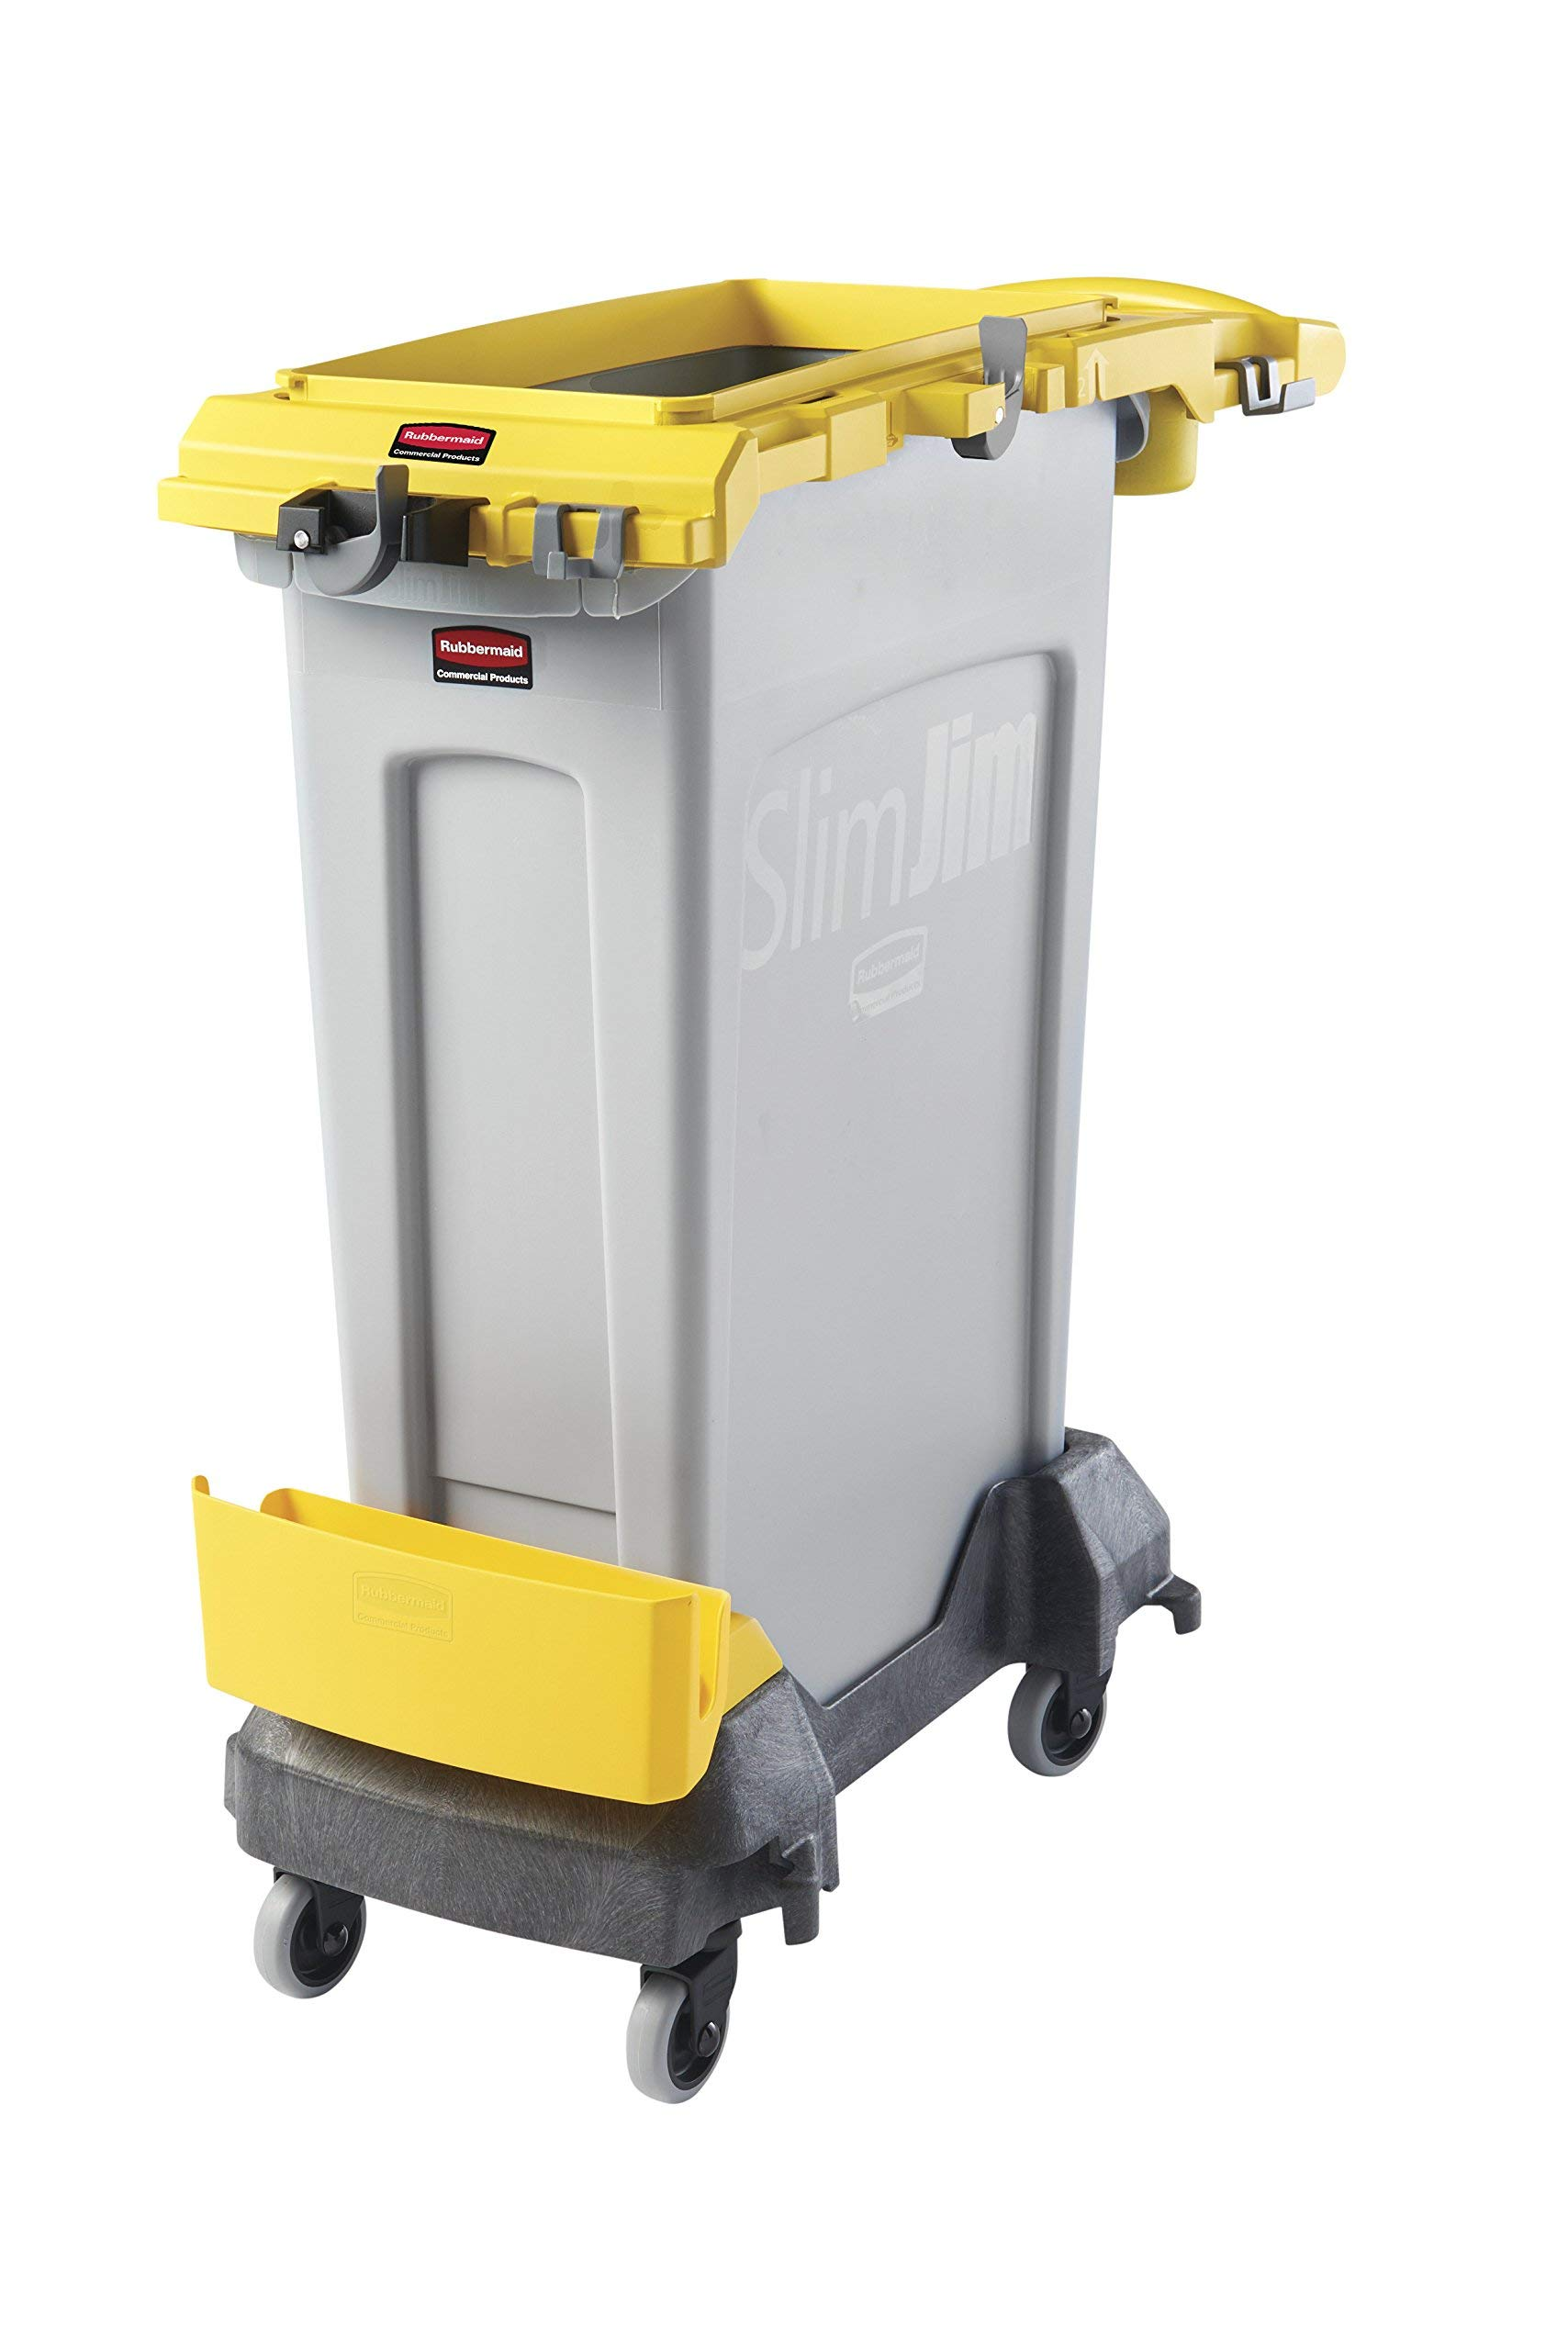 Rubbermaid Commercial Products 2032955 Slim Jim Rim caddy for 23 gal, Yellow (Renewed) by Rubbermaid Commercial Products